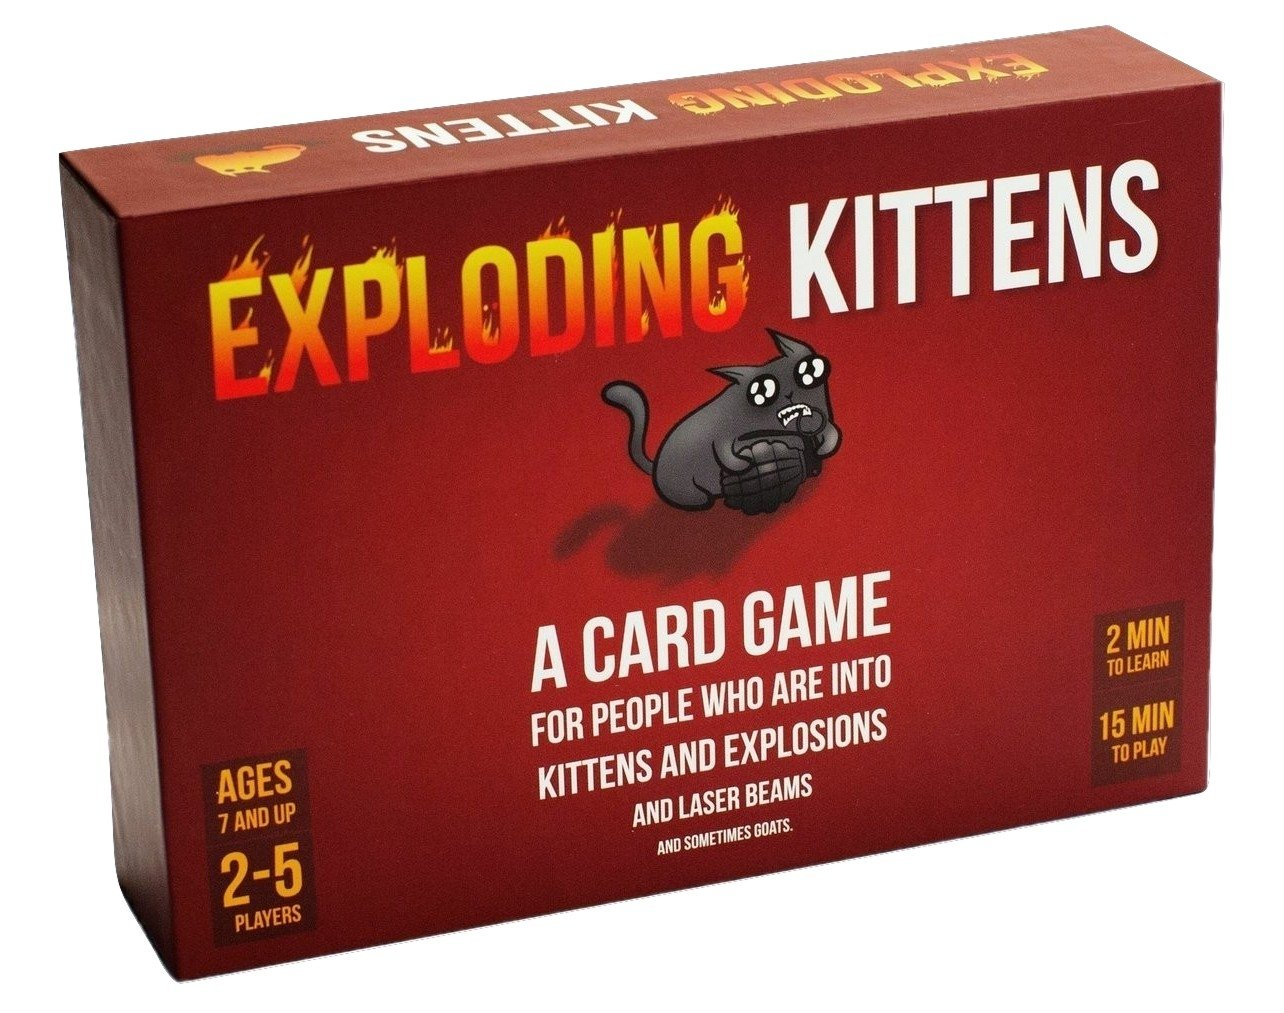 Exploding Kittens Board game for children 7 years and up